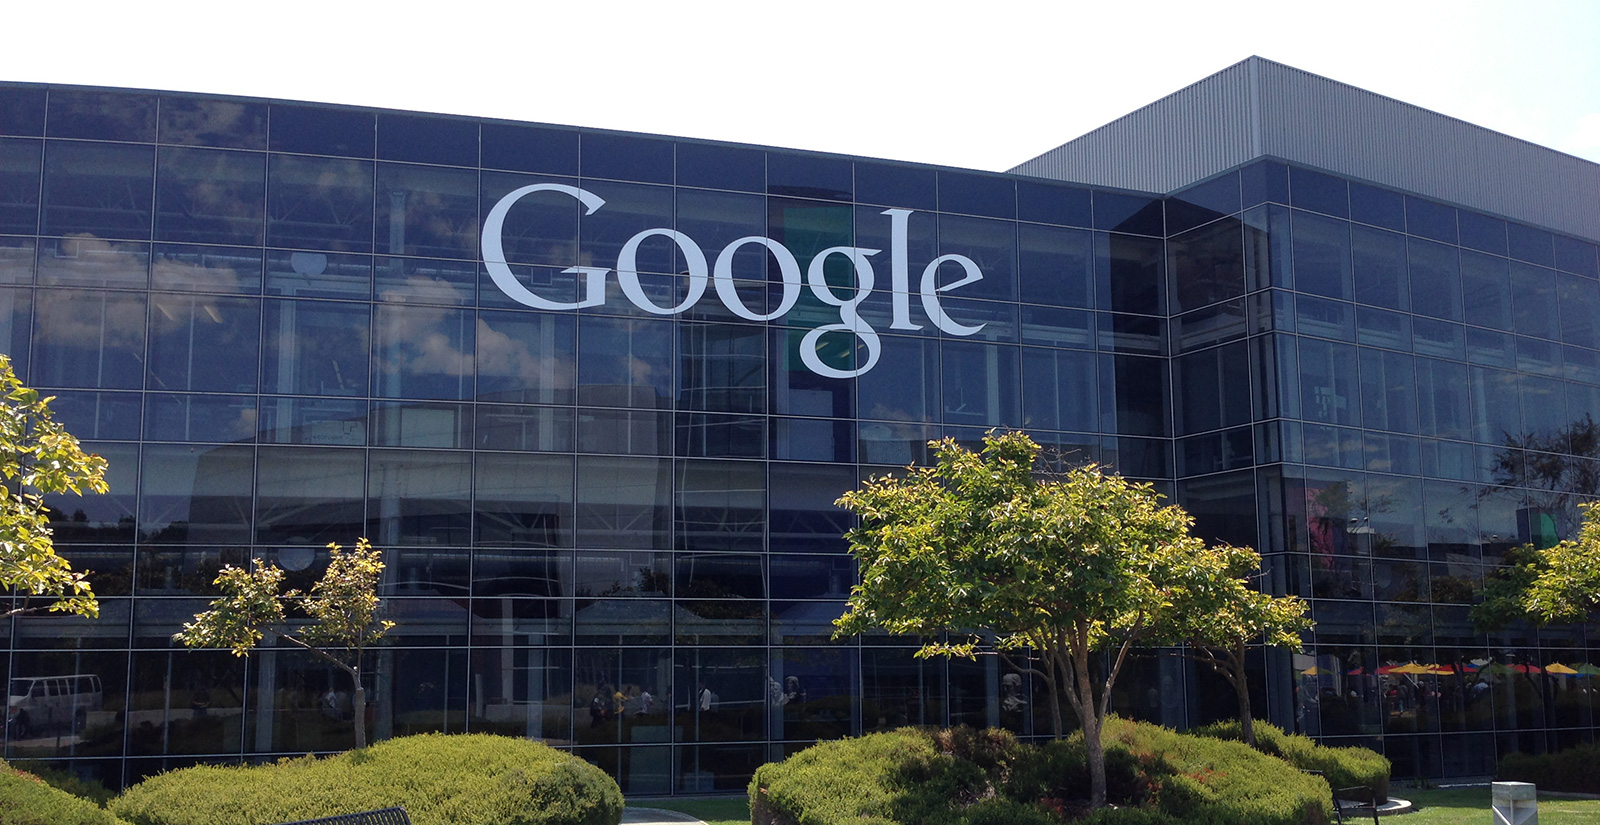 Google awards 10 000 prize to student who reported big security vulnerability - Google head office photos ...